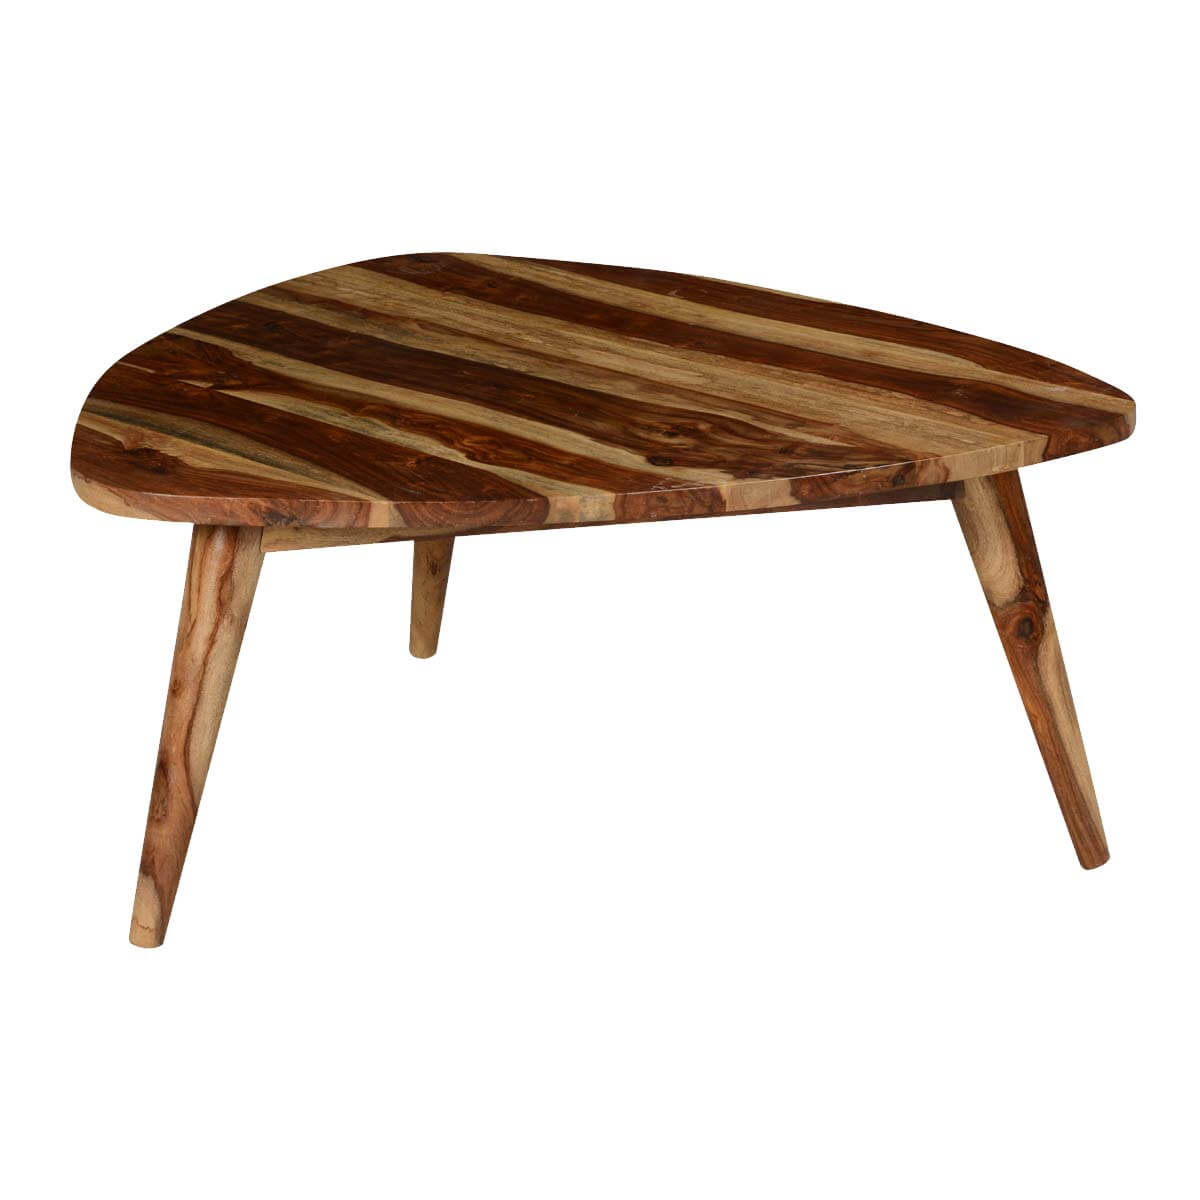 Triangular Table Plans Triangular Solid Wood Coffee Table